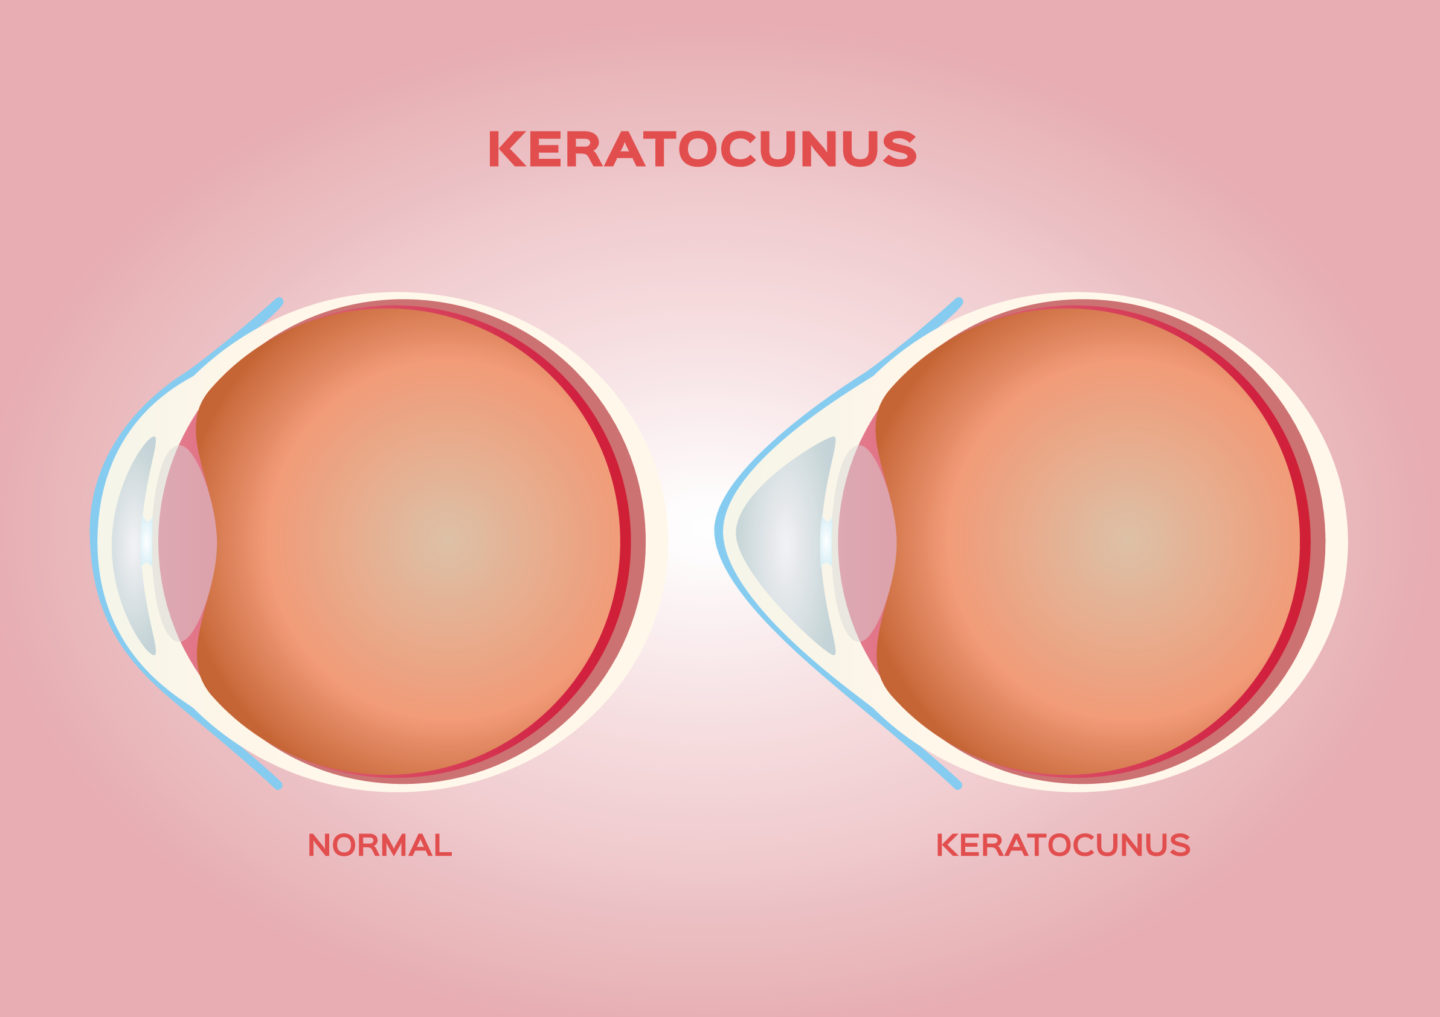 Keratoconus Treatment Options - First Eye Care DFW